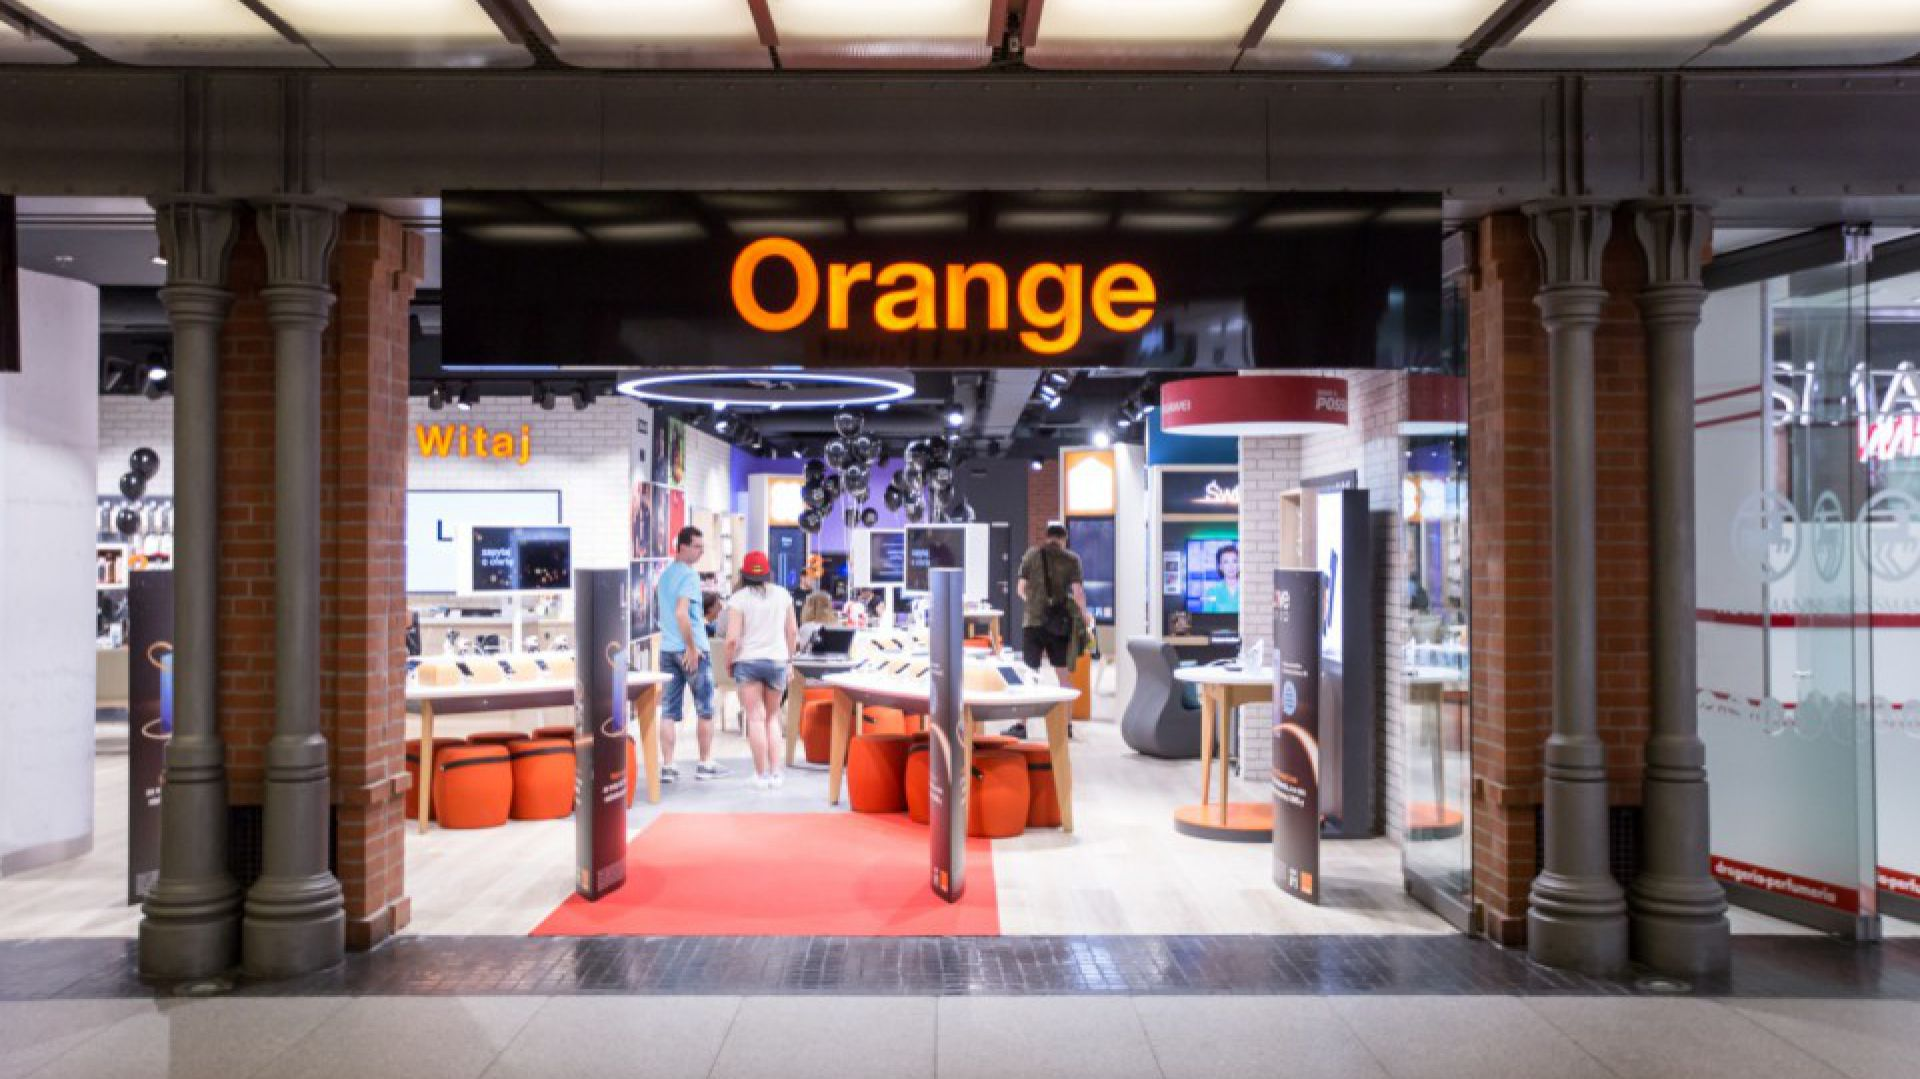 Orange Smart Store, fot. Jakub Wittchen